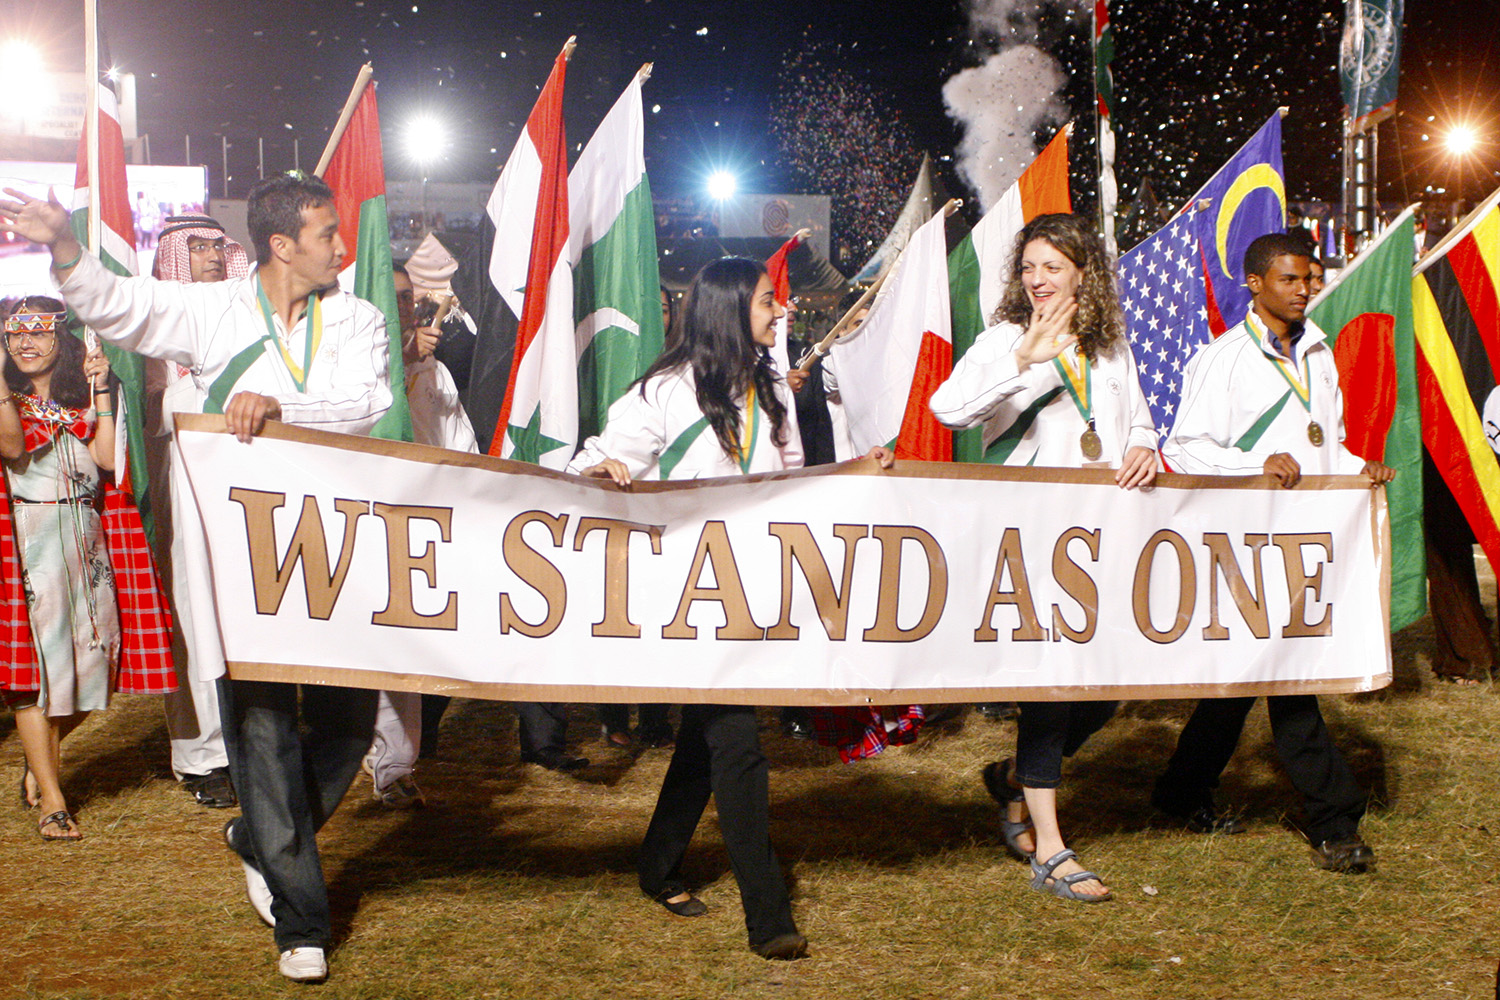 Celebrating diversity of cultures during the closing ceremonies at the 2008 Golden Jubilee Games. JG